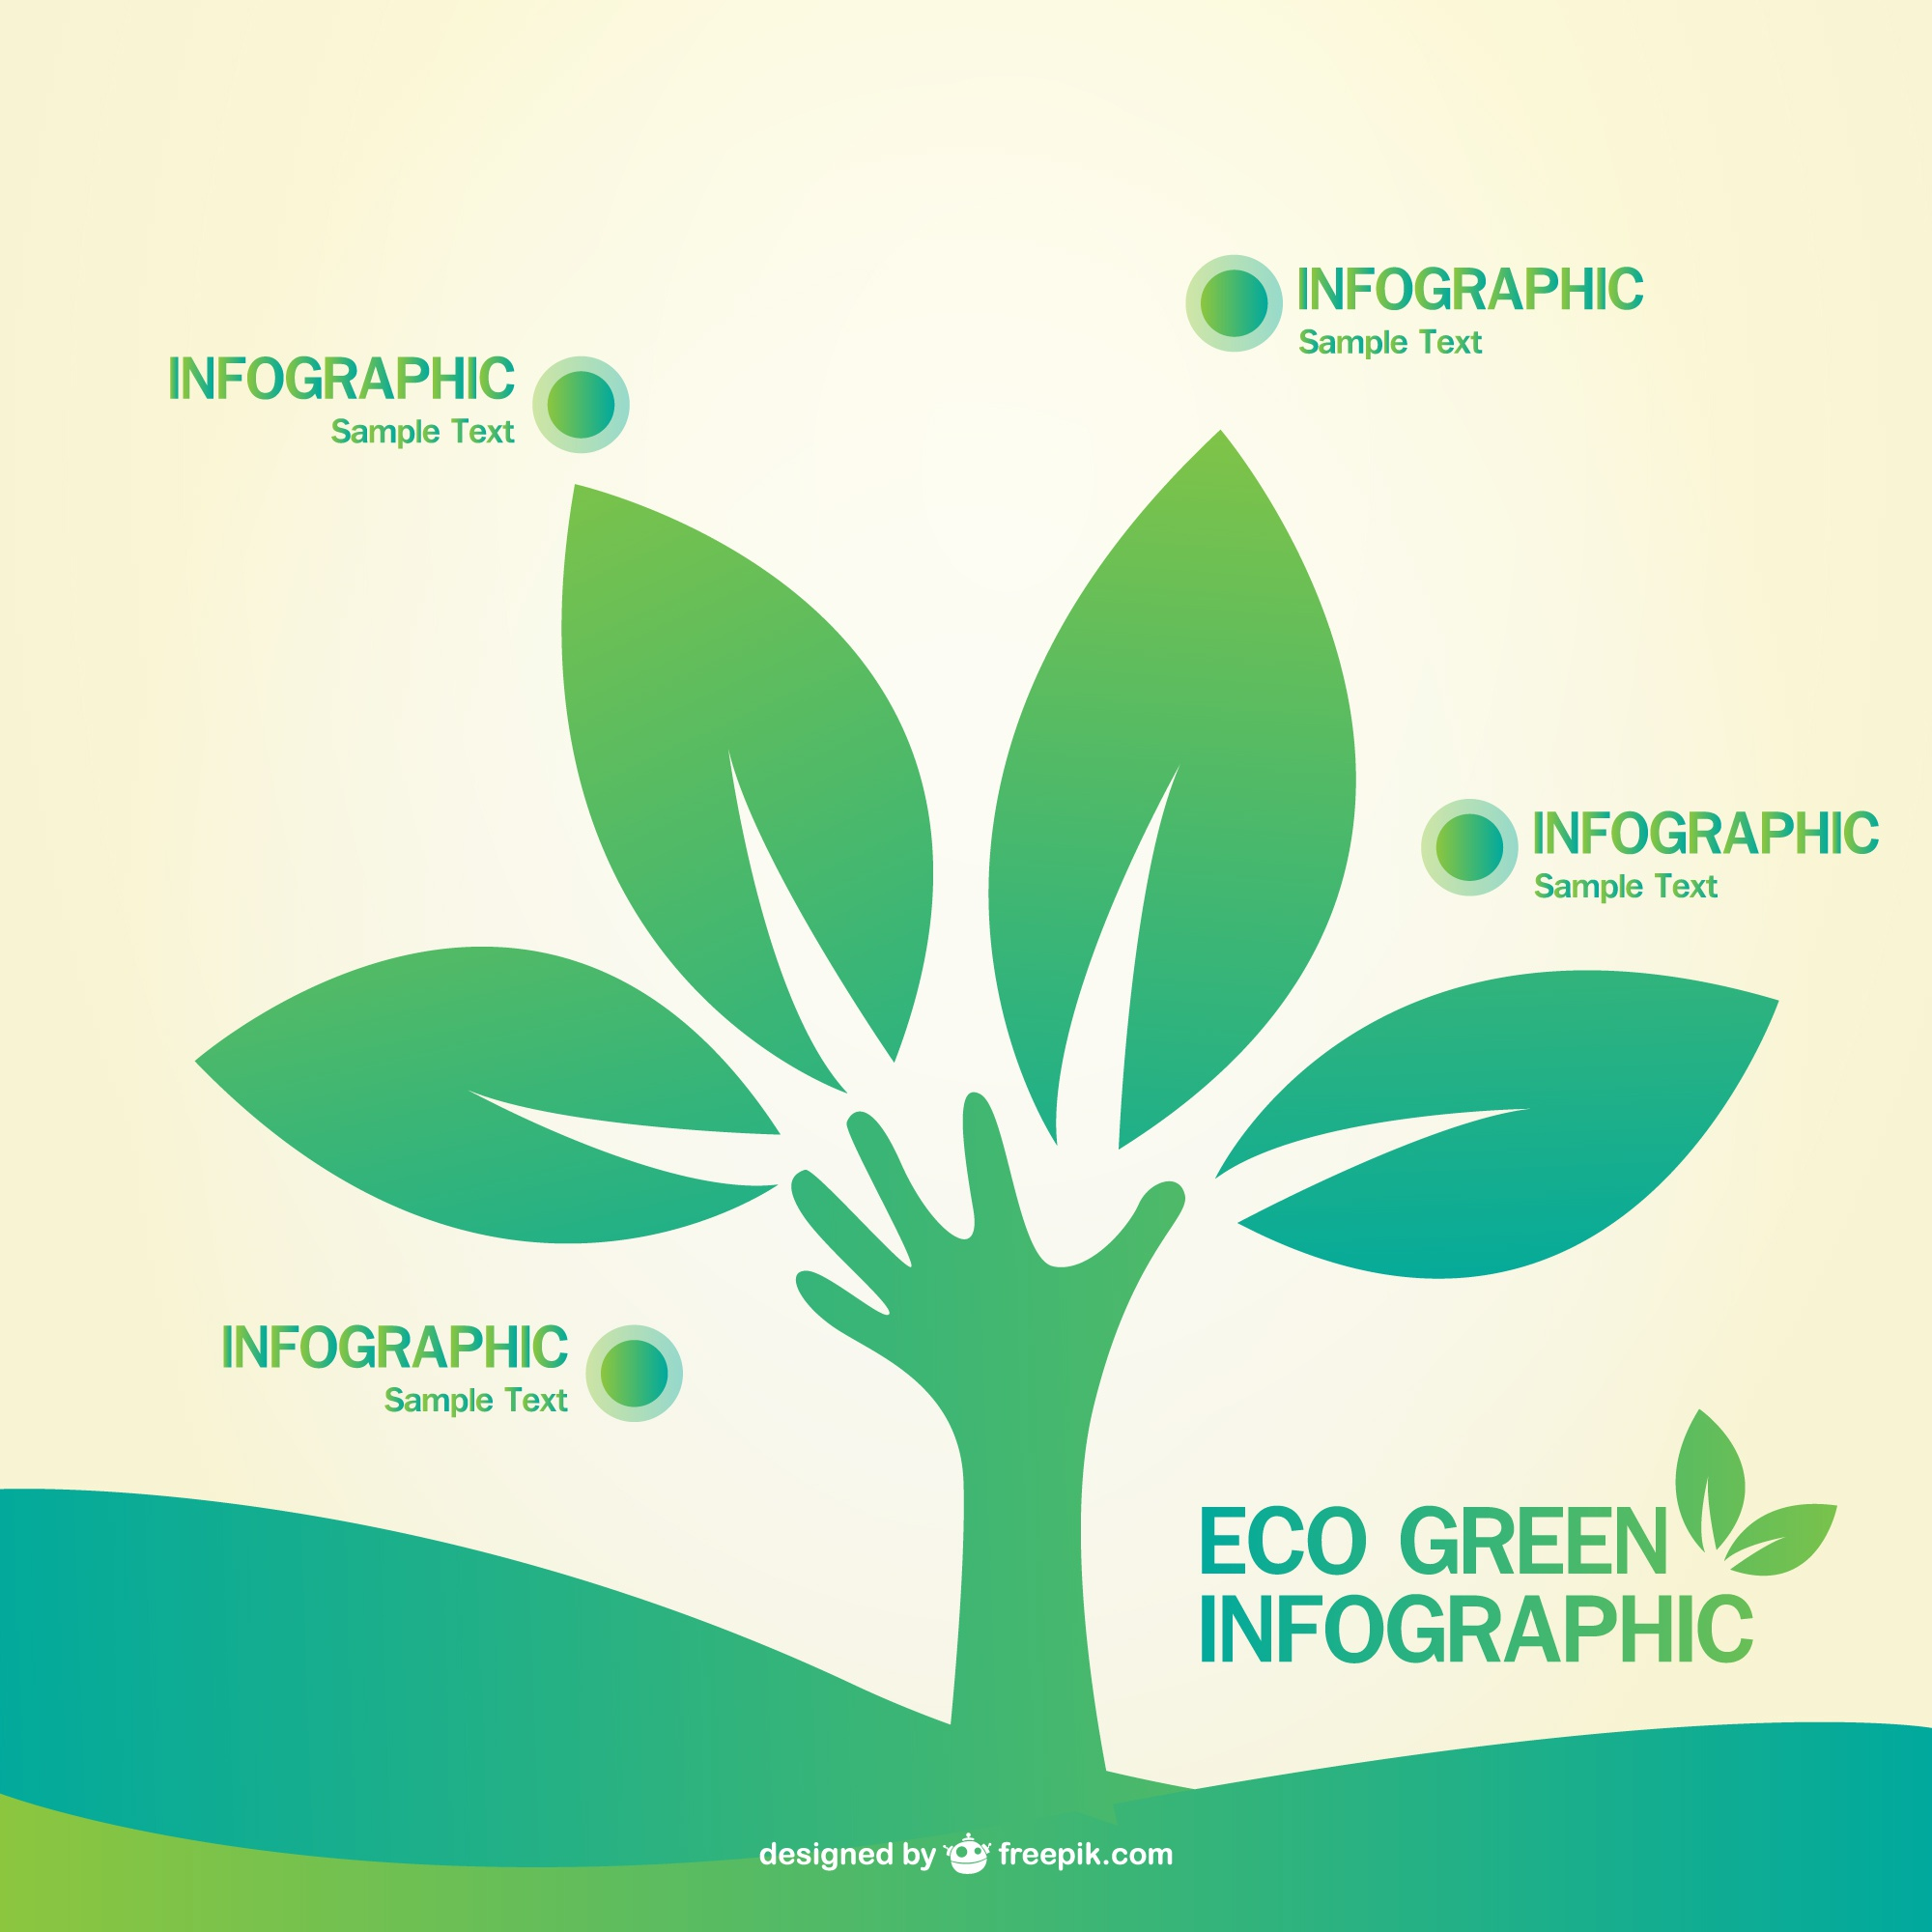 Green infographic vector template